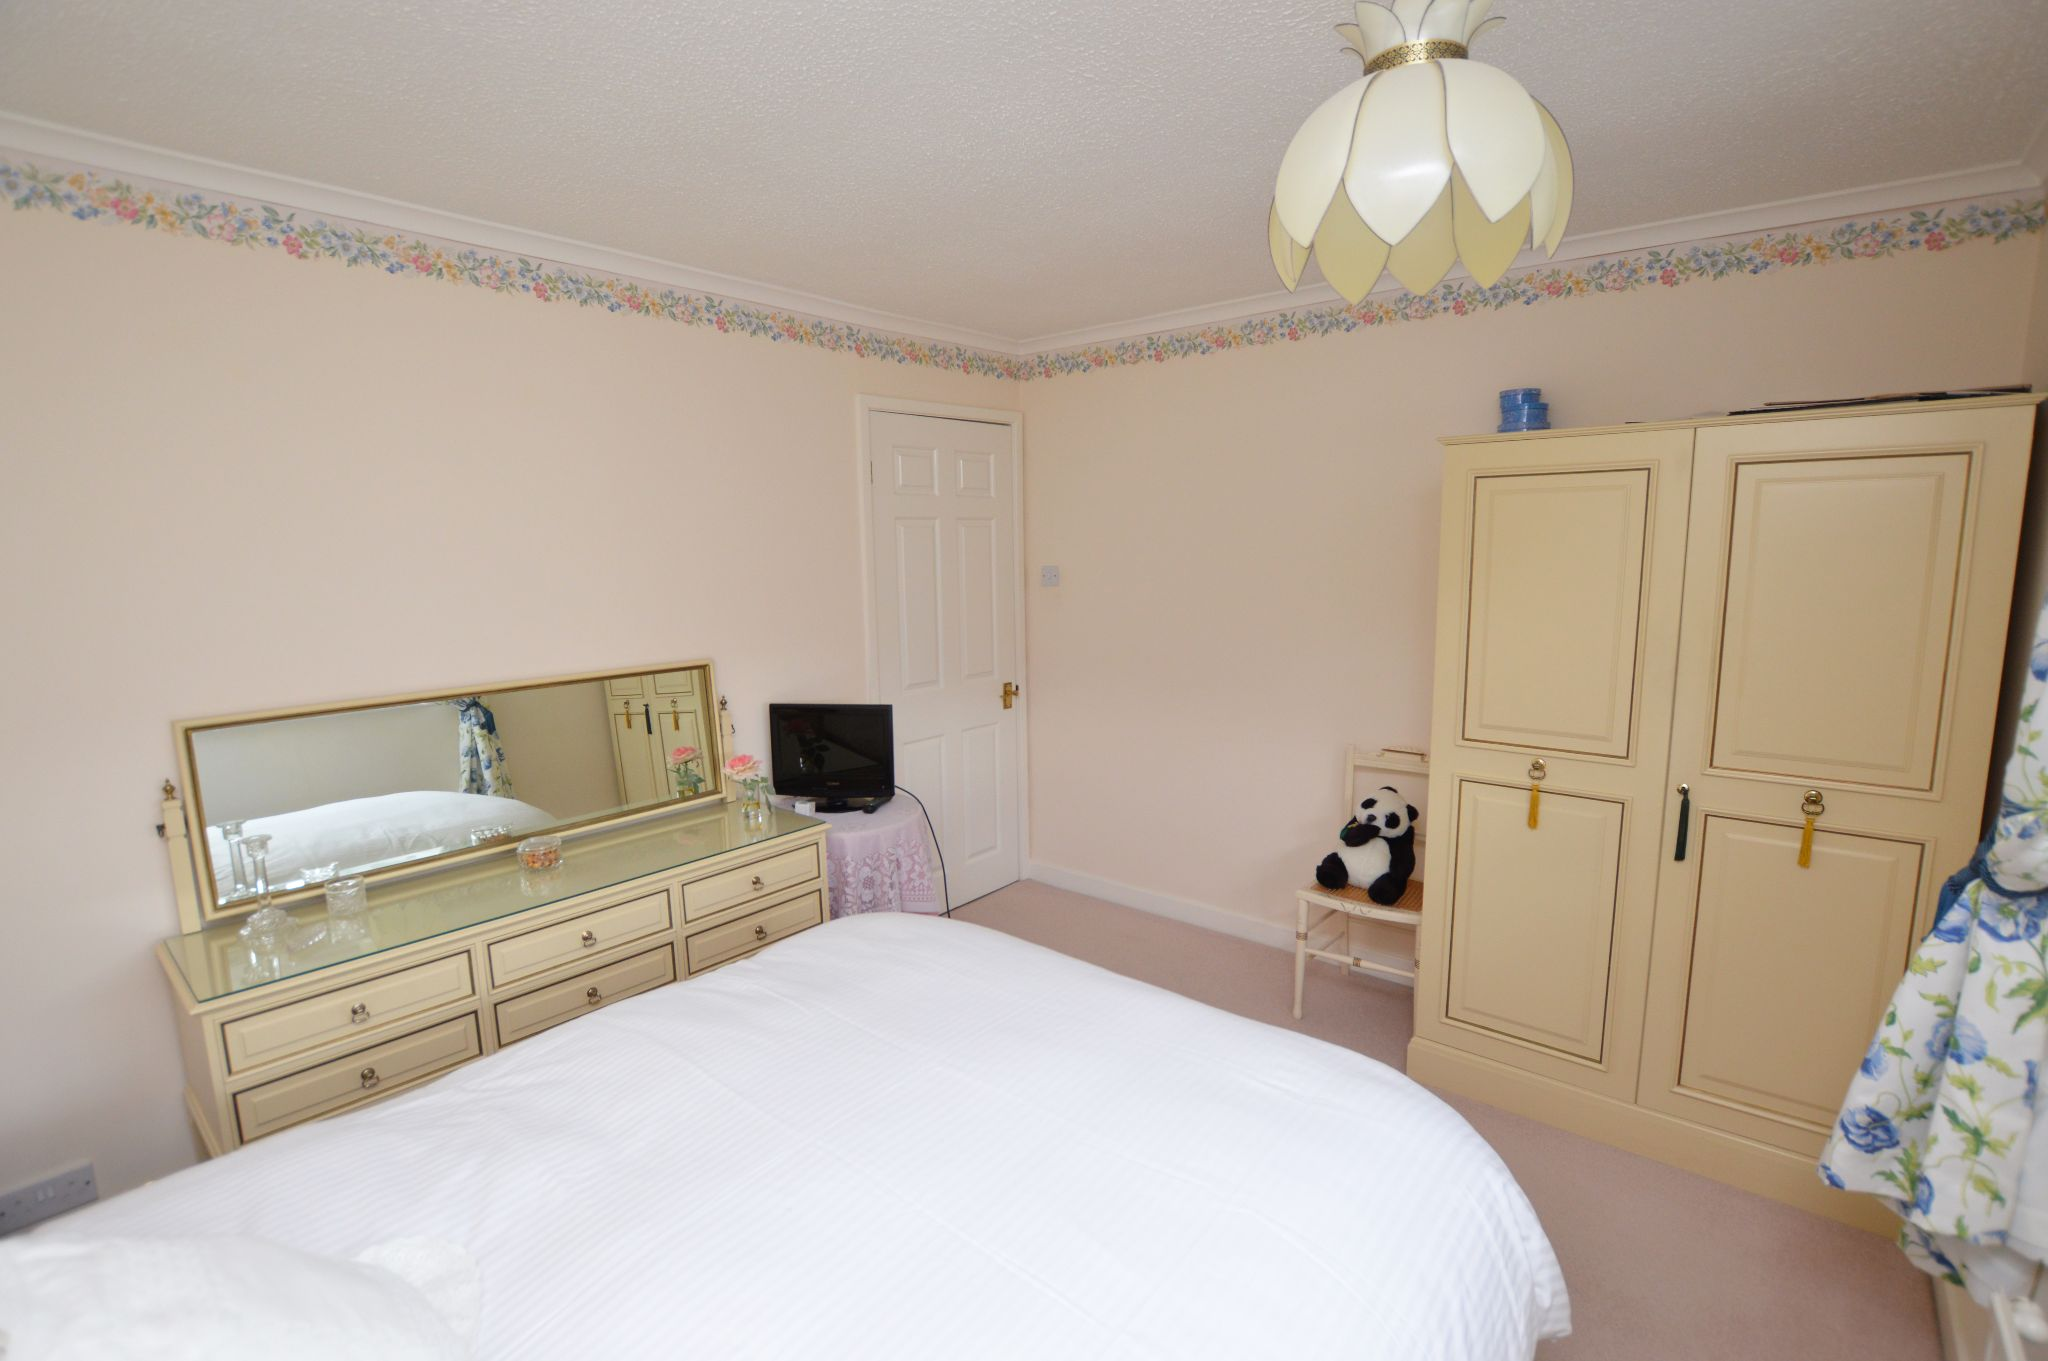 4 bedroom detached house For Sale in Abergele - Bedroom 3 View 3